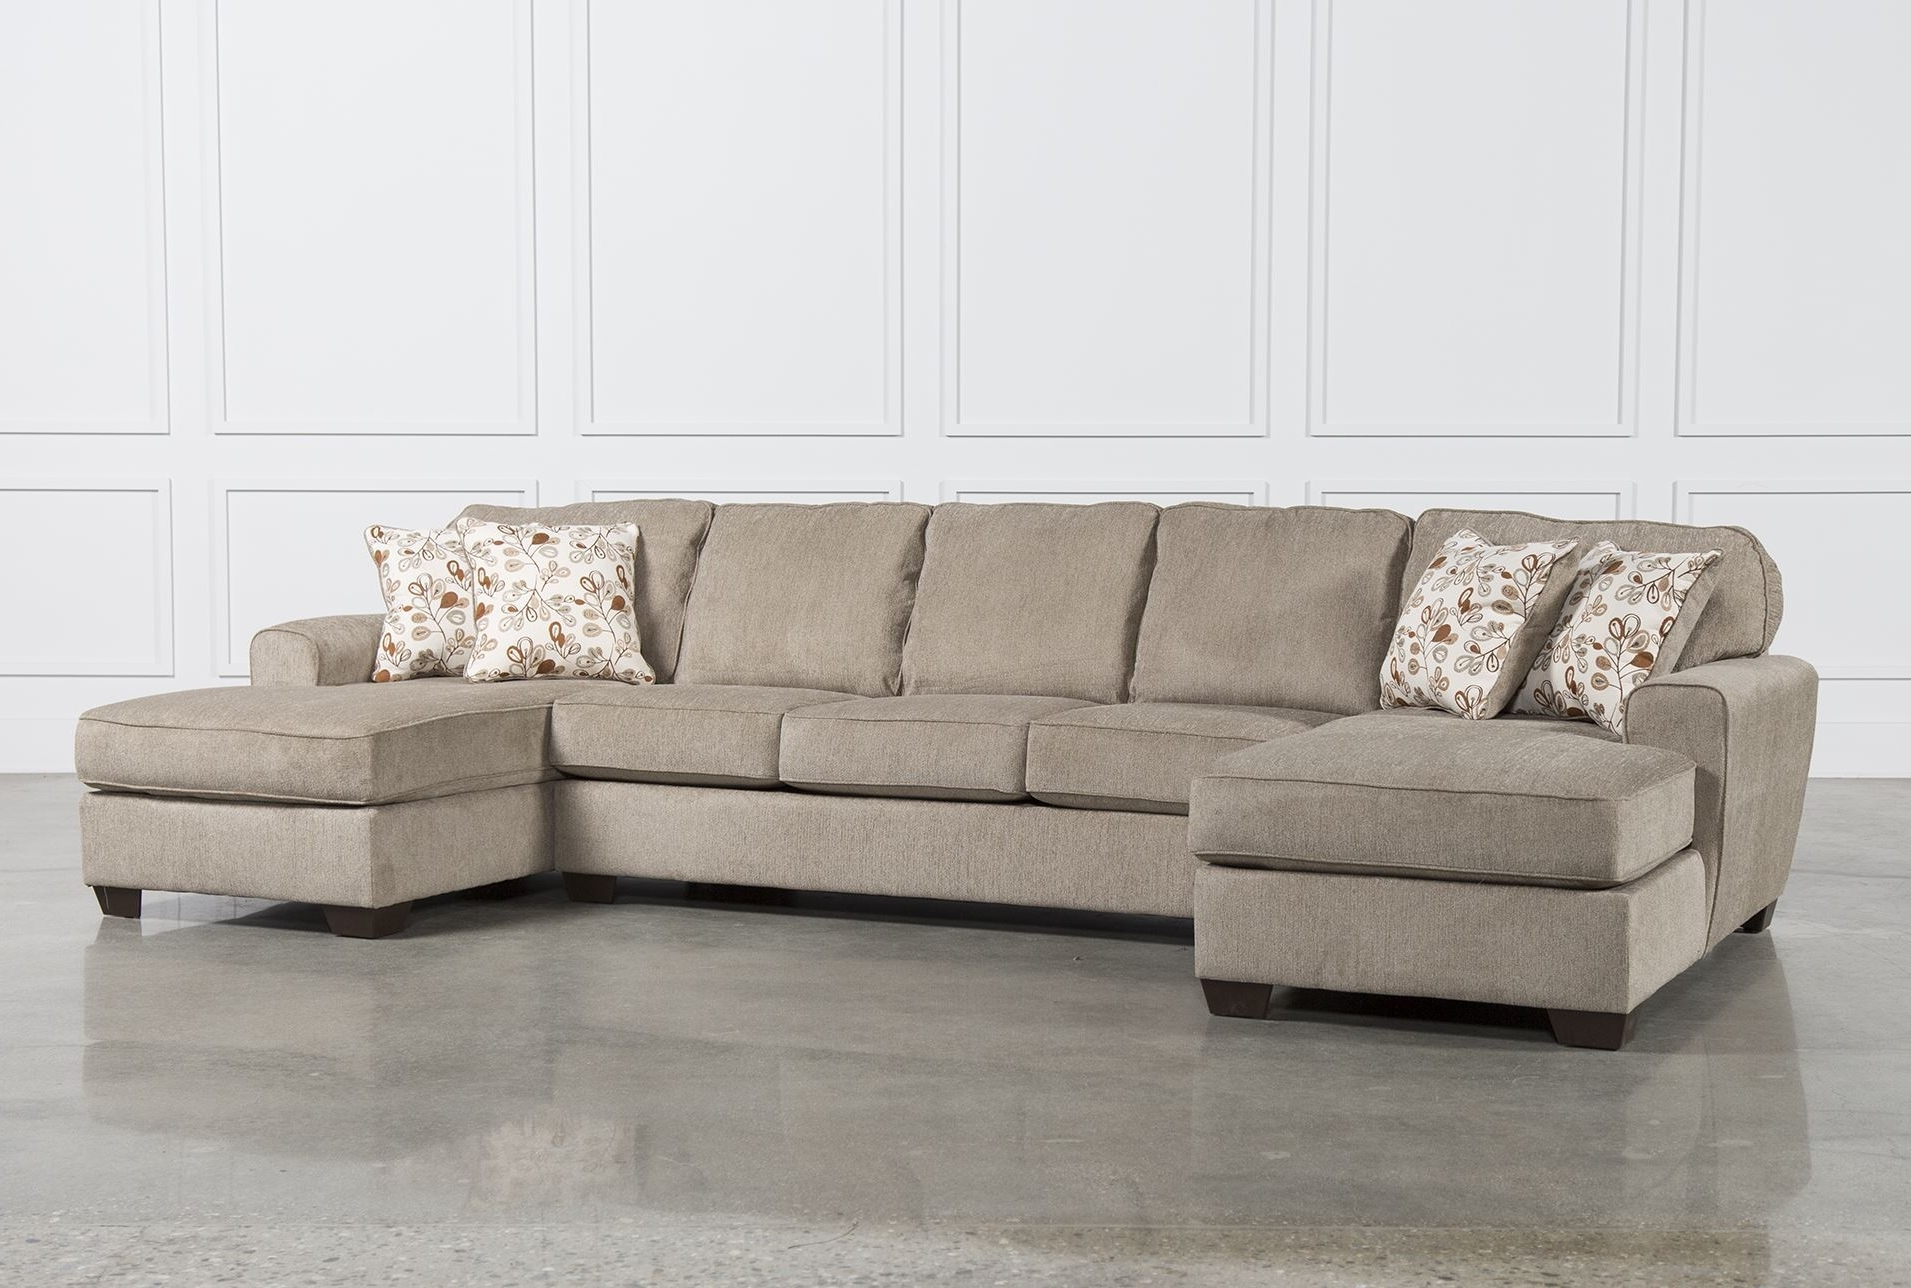 Sectional Sofa With 2 Chaises Lounge Ii 2 Piece Double